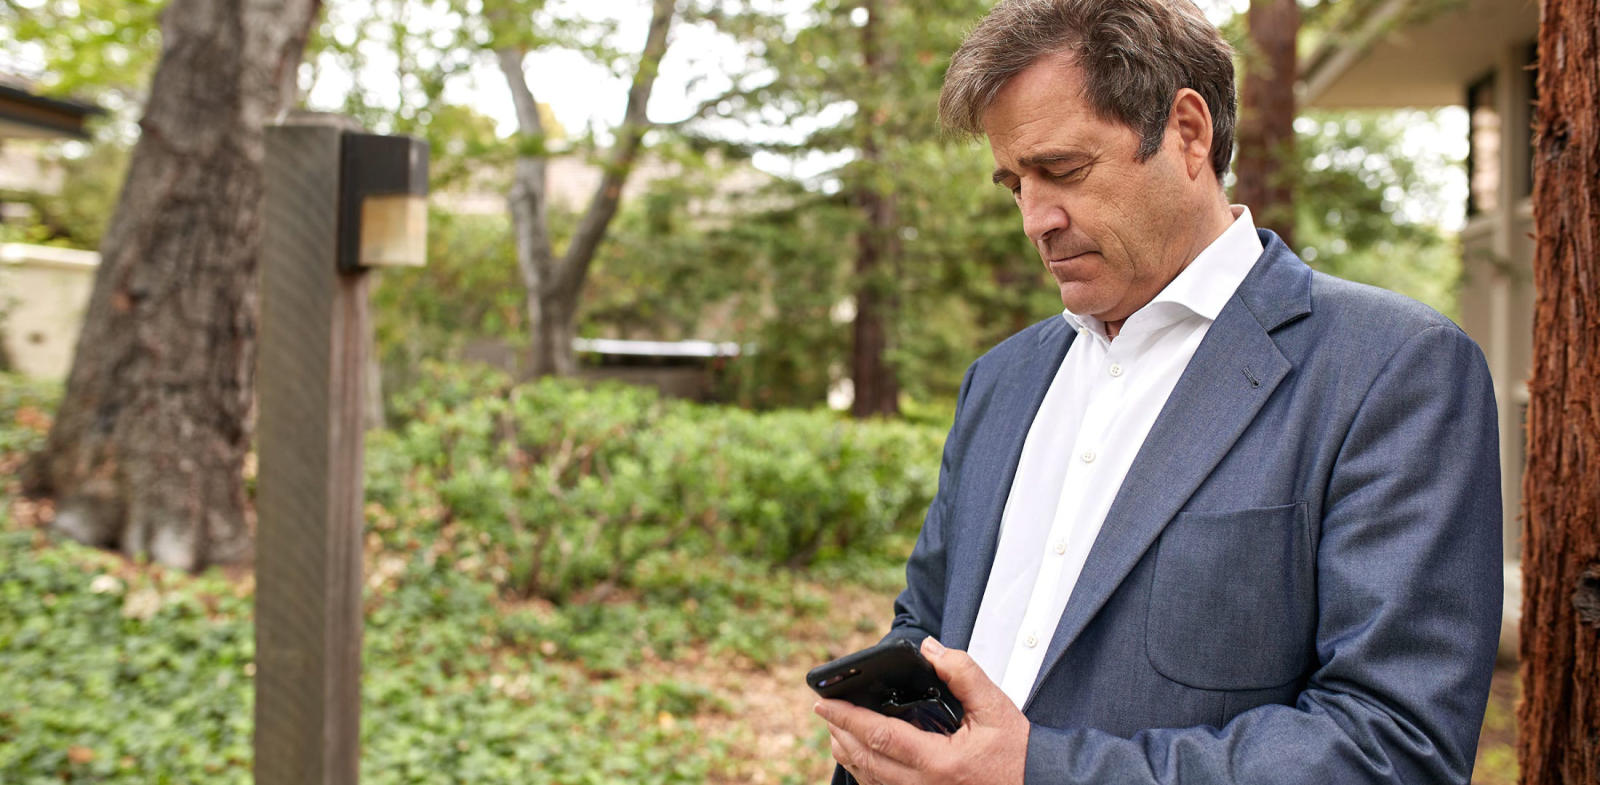 Bing Gordon outdoors looking at mobile phone